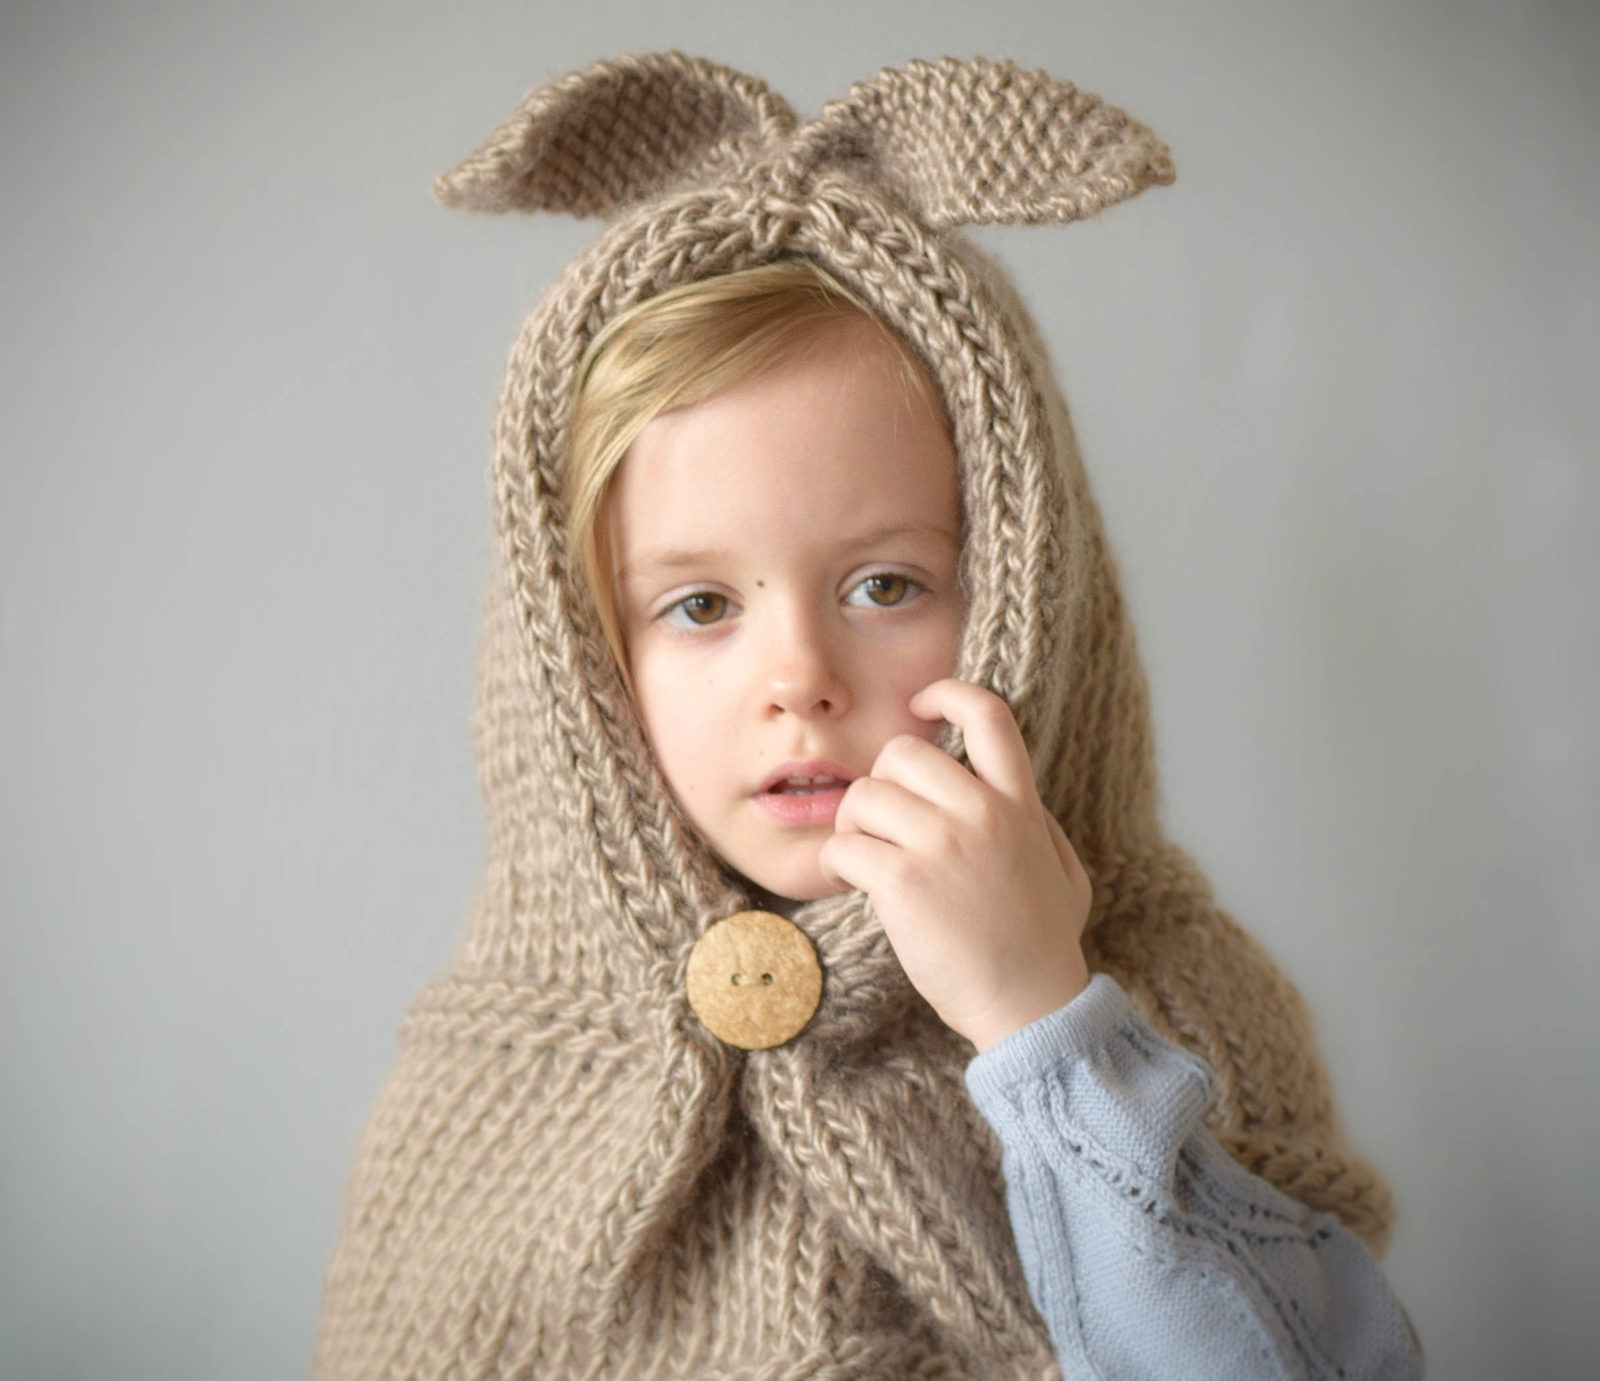 Hooded Cowl Knit Pattern : Velvet Rabbit Hooded Stole/Cowl Pattern   Mama In A Stitch